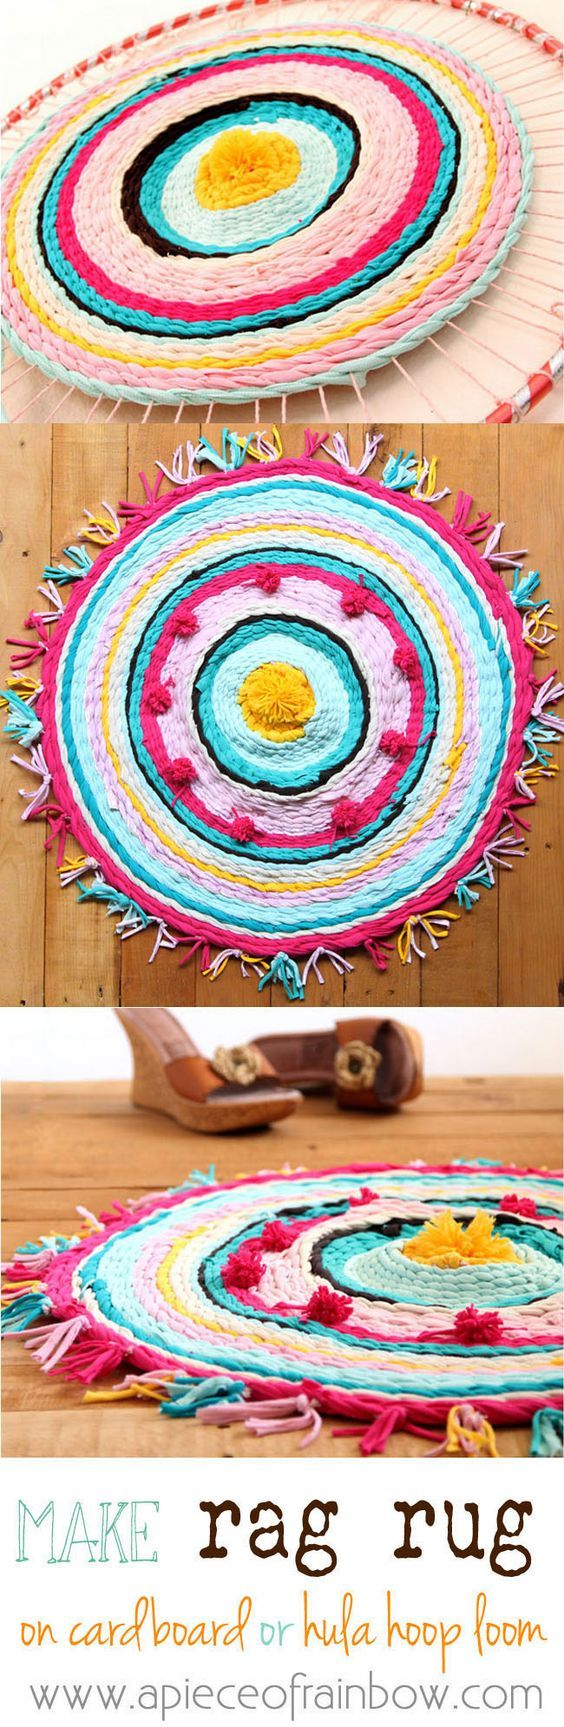 best diy rugs images on pinterest diy rugs crafts and bricolage